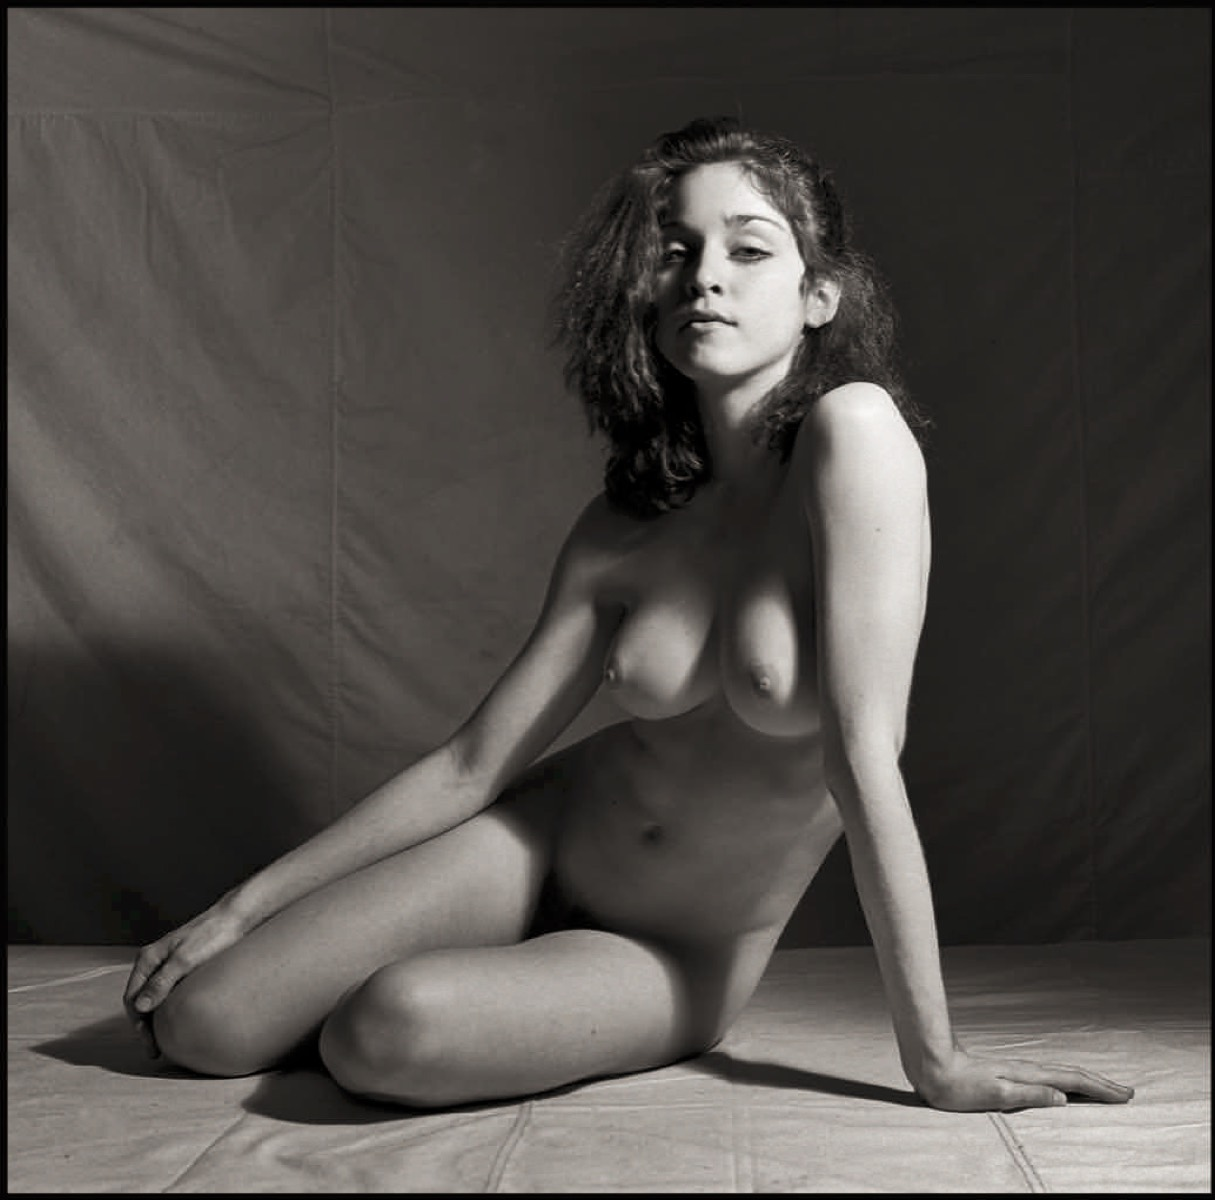 madonna-full-frontal-nude-webcam-videos-really